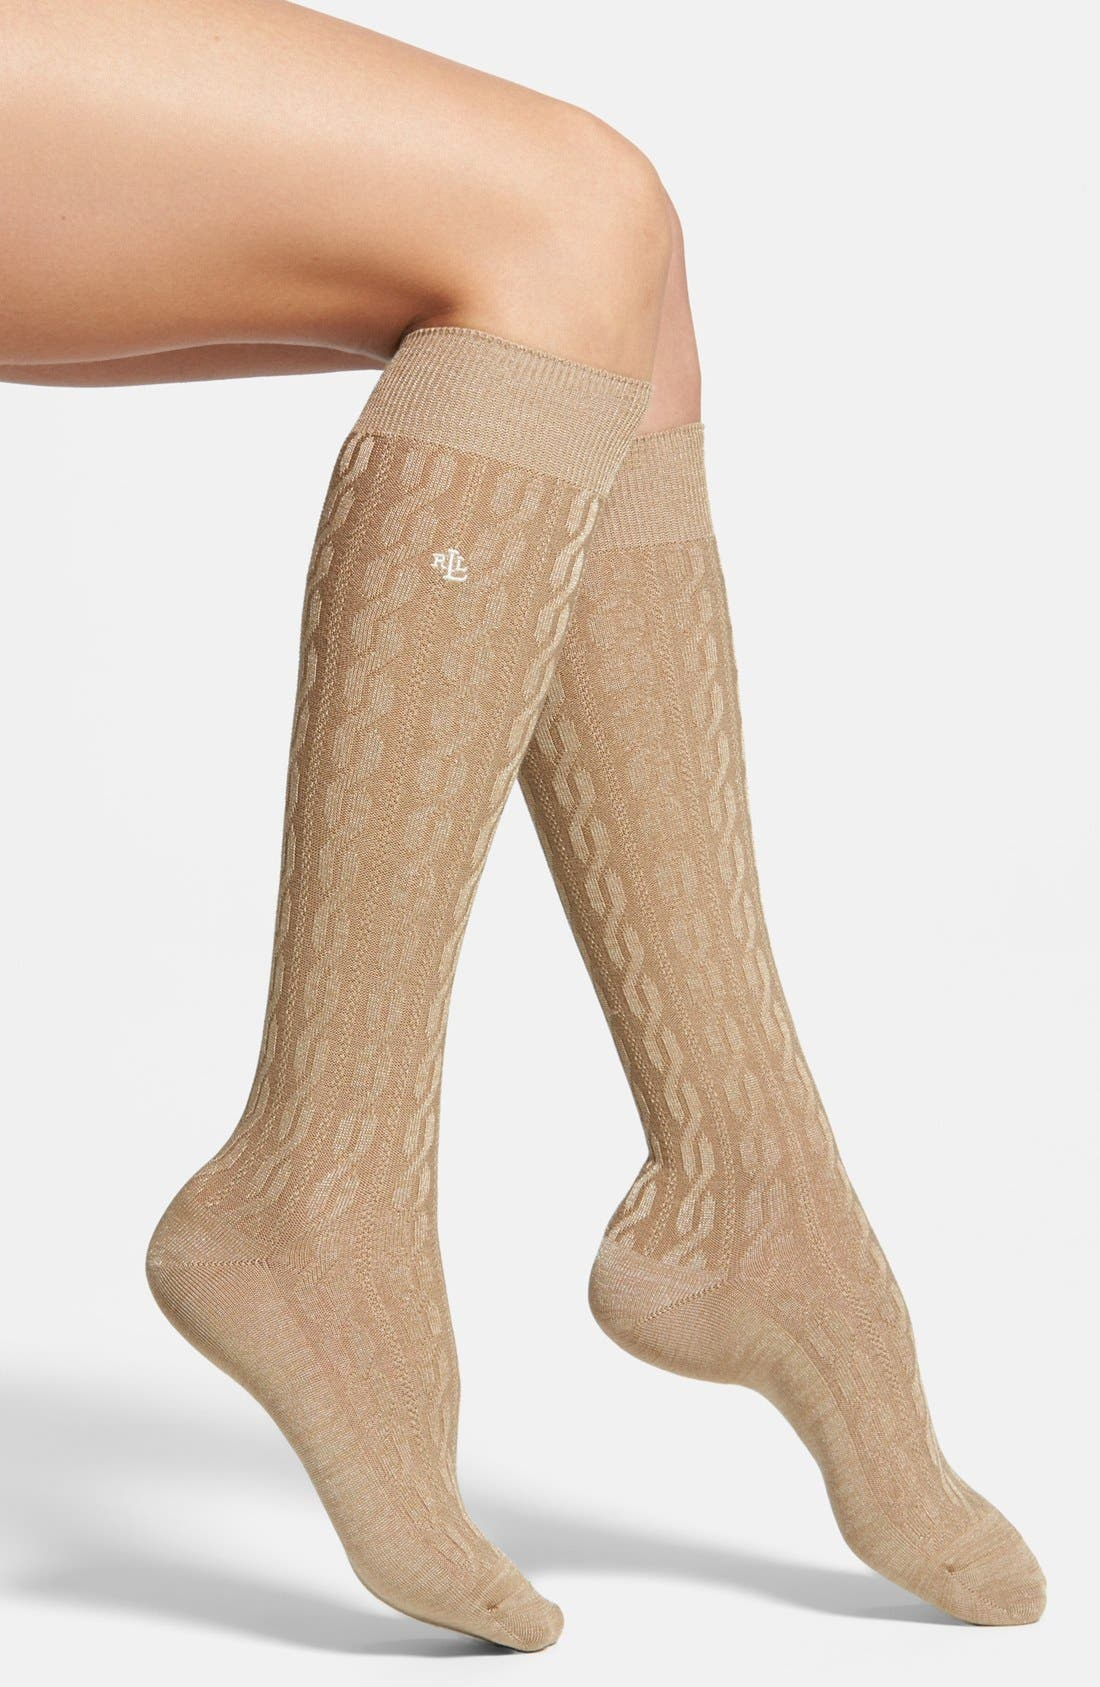 Alternate Image 1 Selected - Ralph Lauren Cable Knit Knee High Socks